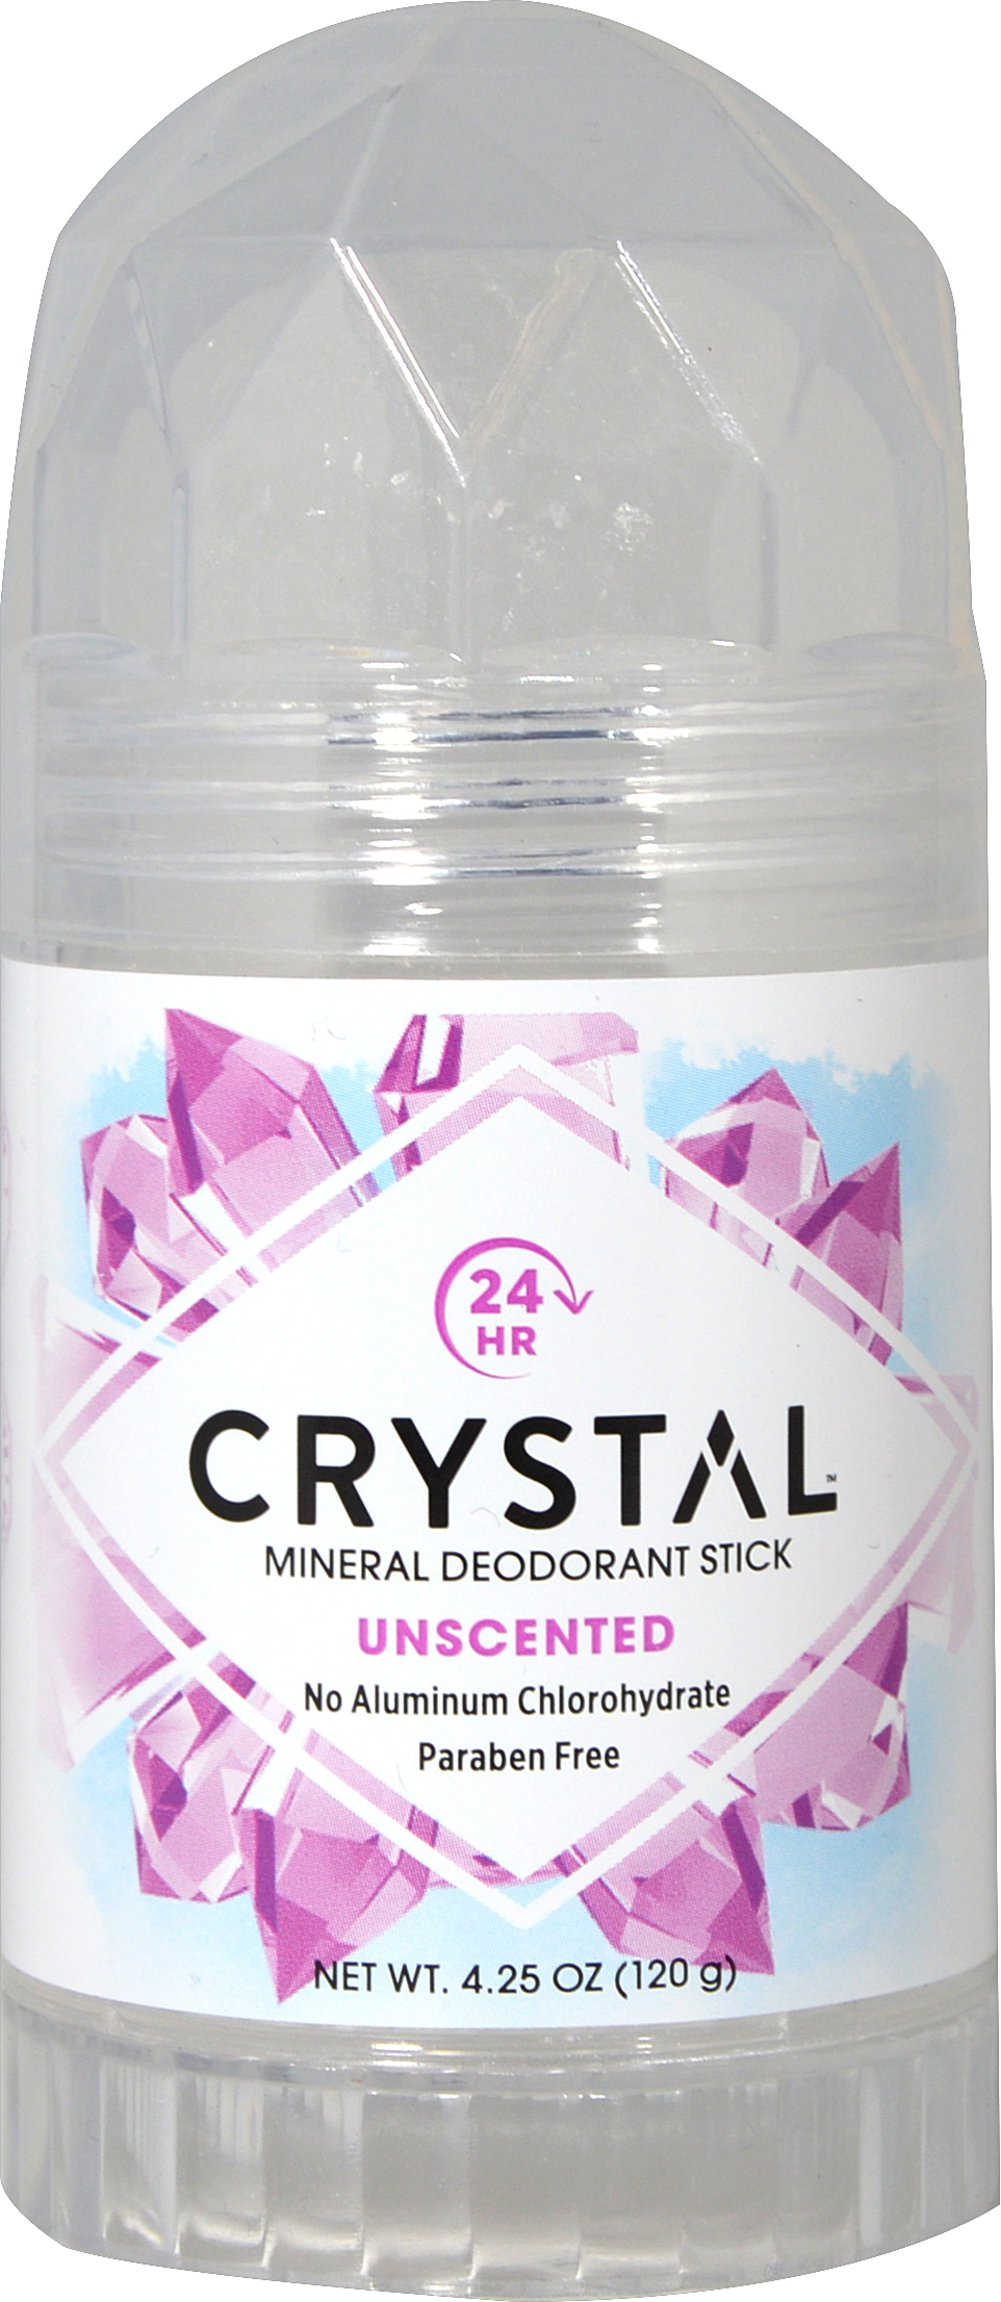 Crystal® Body Deodorant Stick